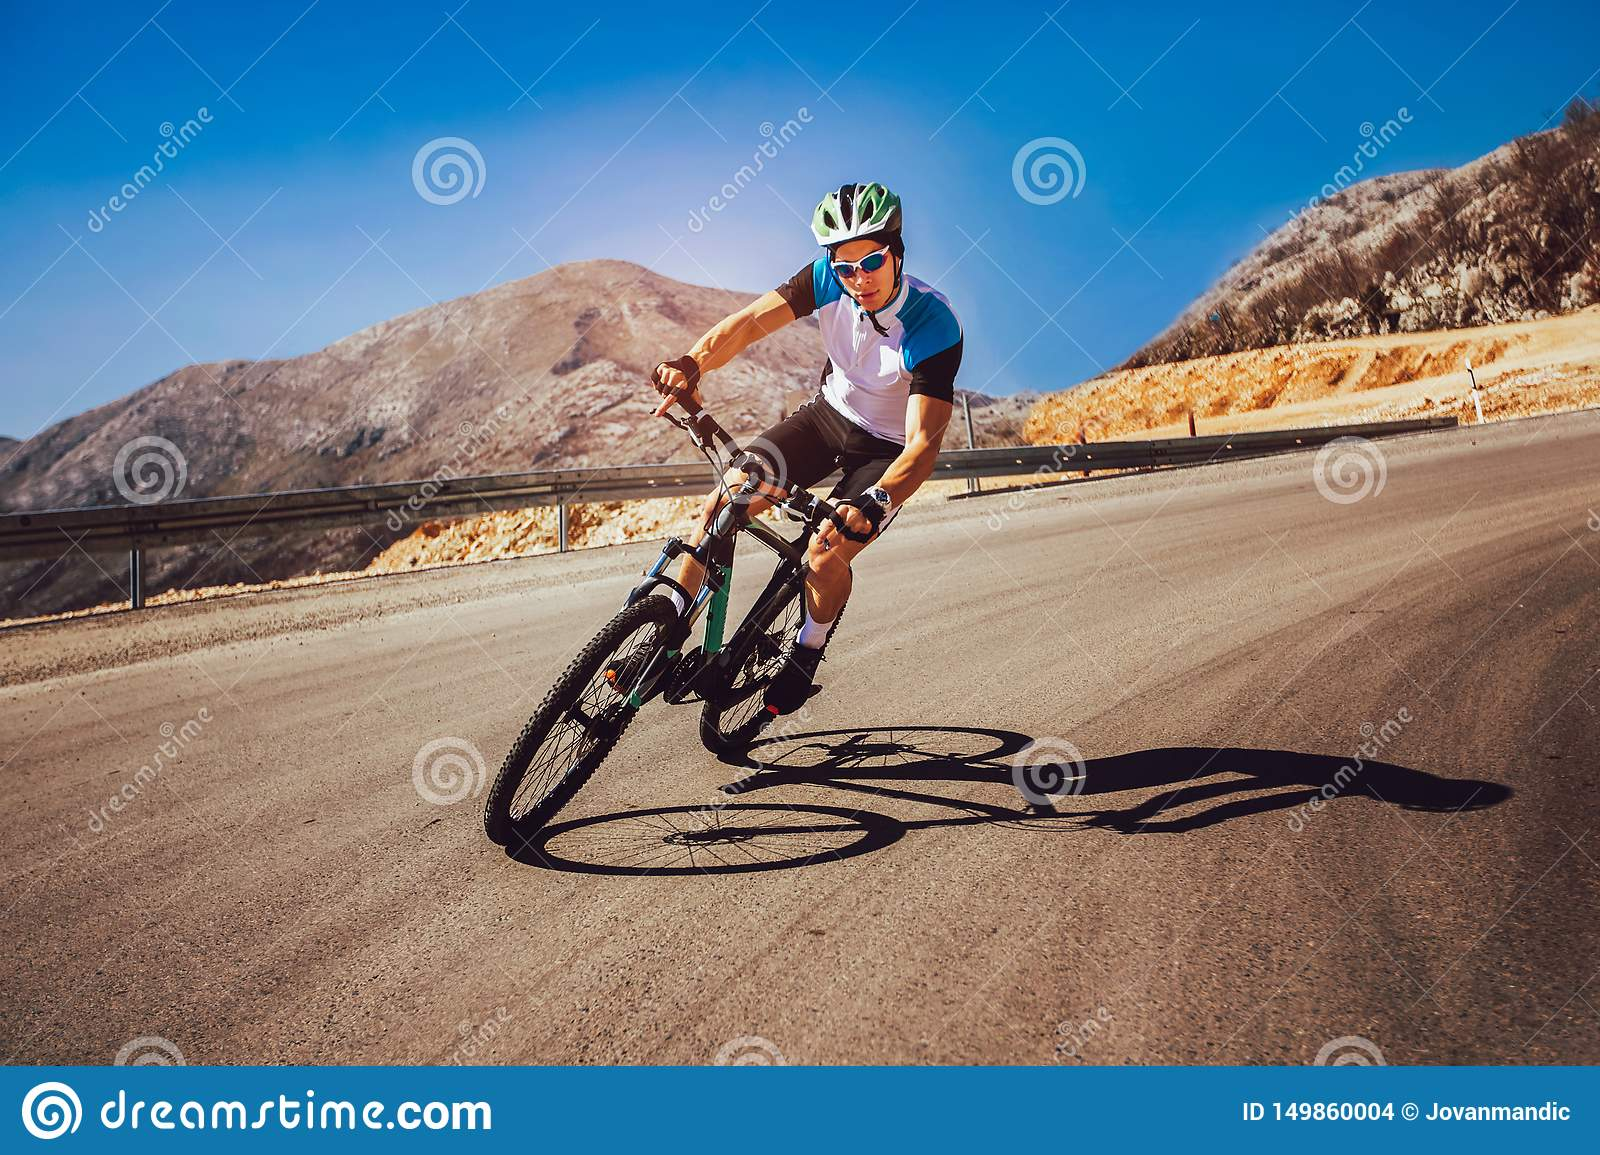 Man Ride Mountain Bike On The Road  Stock Photo - Image of